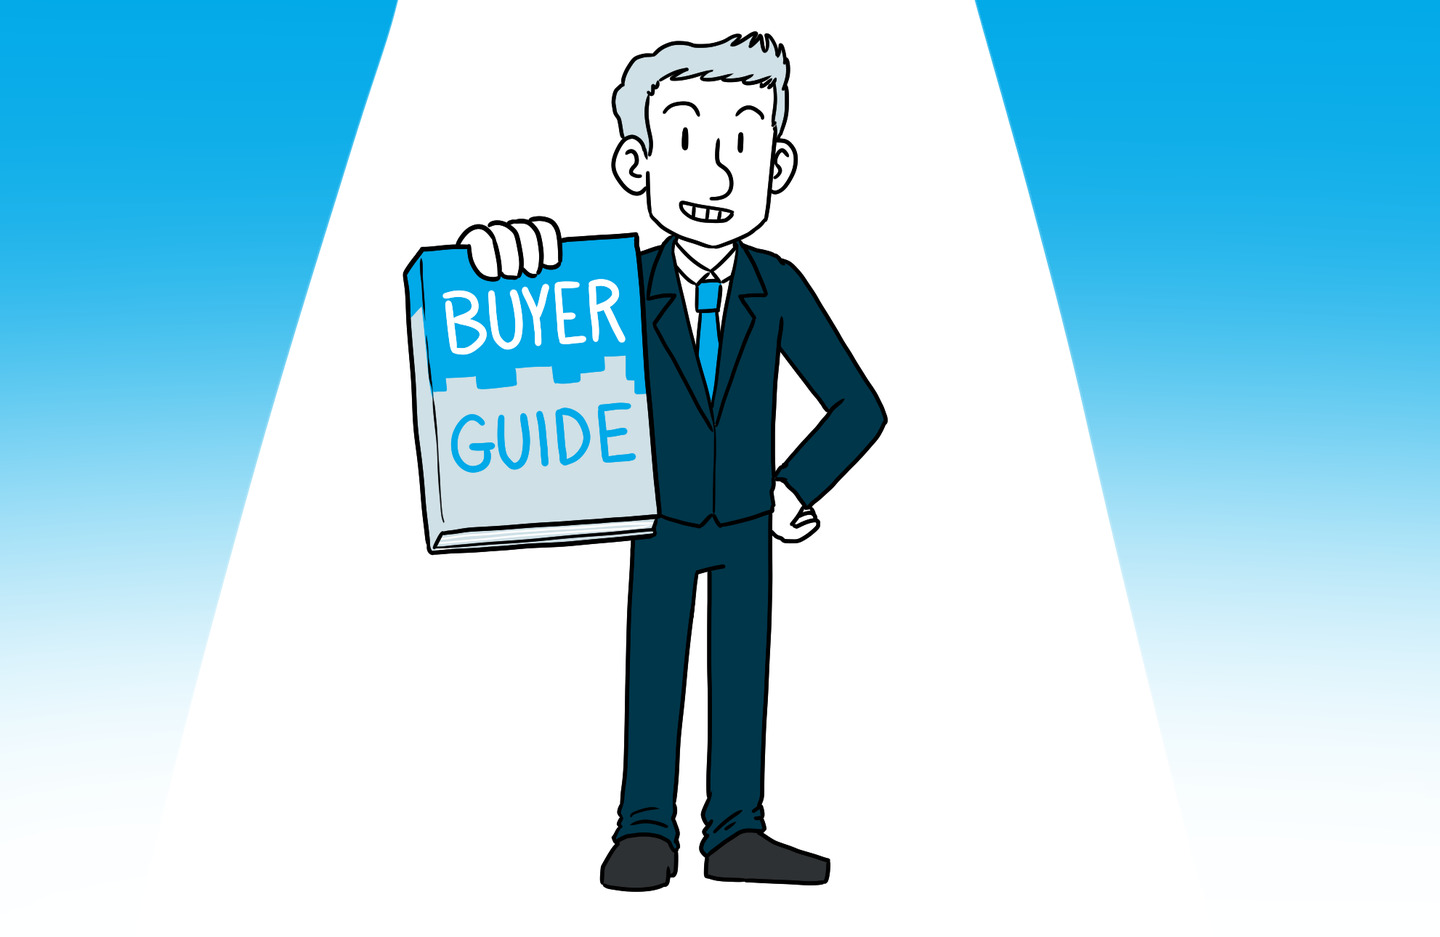 Confident buyer holding up a published Buyer's Guide